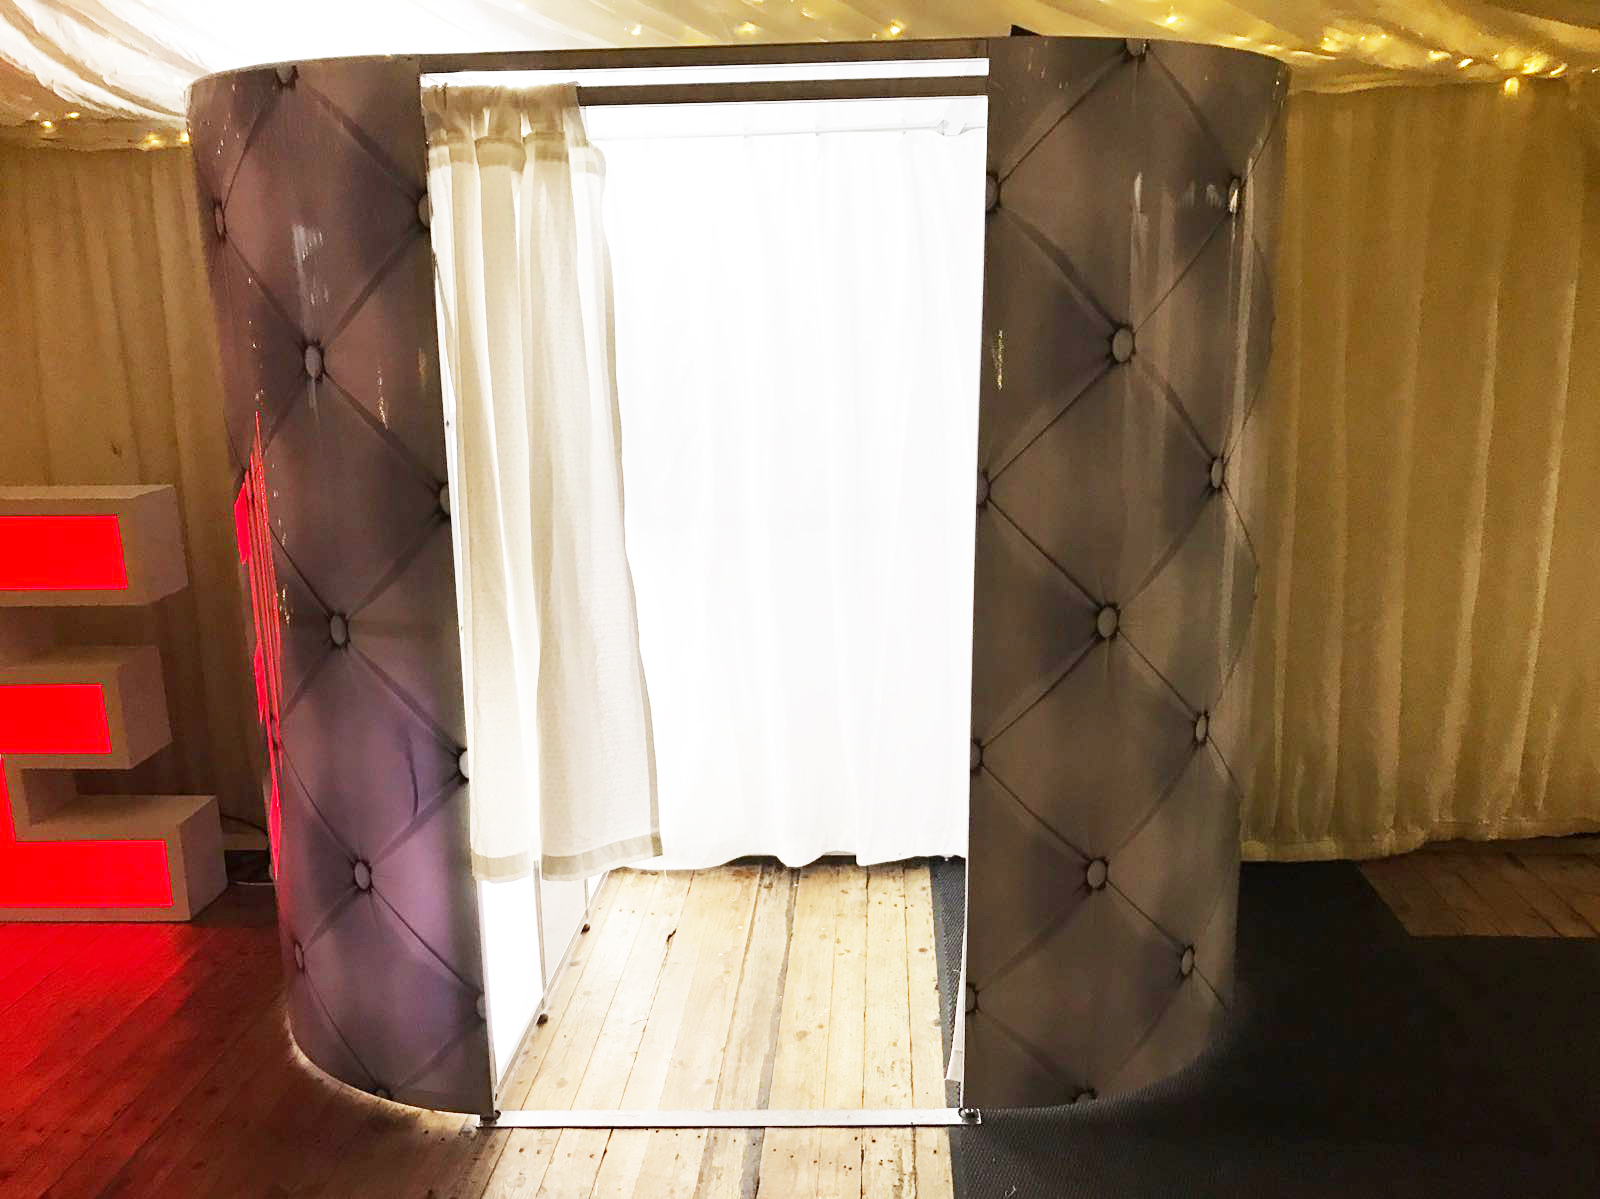 chair covers for hire south wales oversized lounge chairs photo booth starlight events